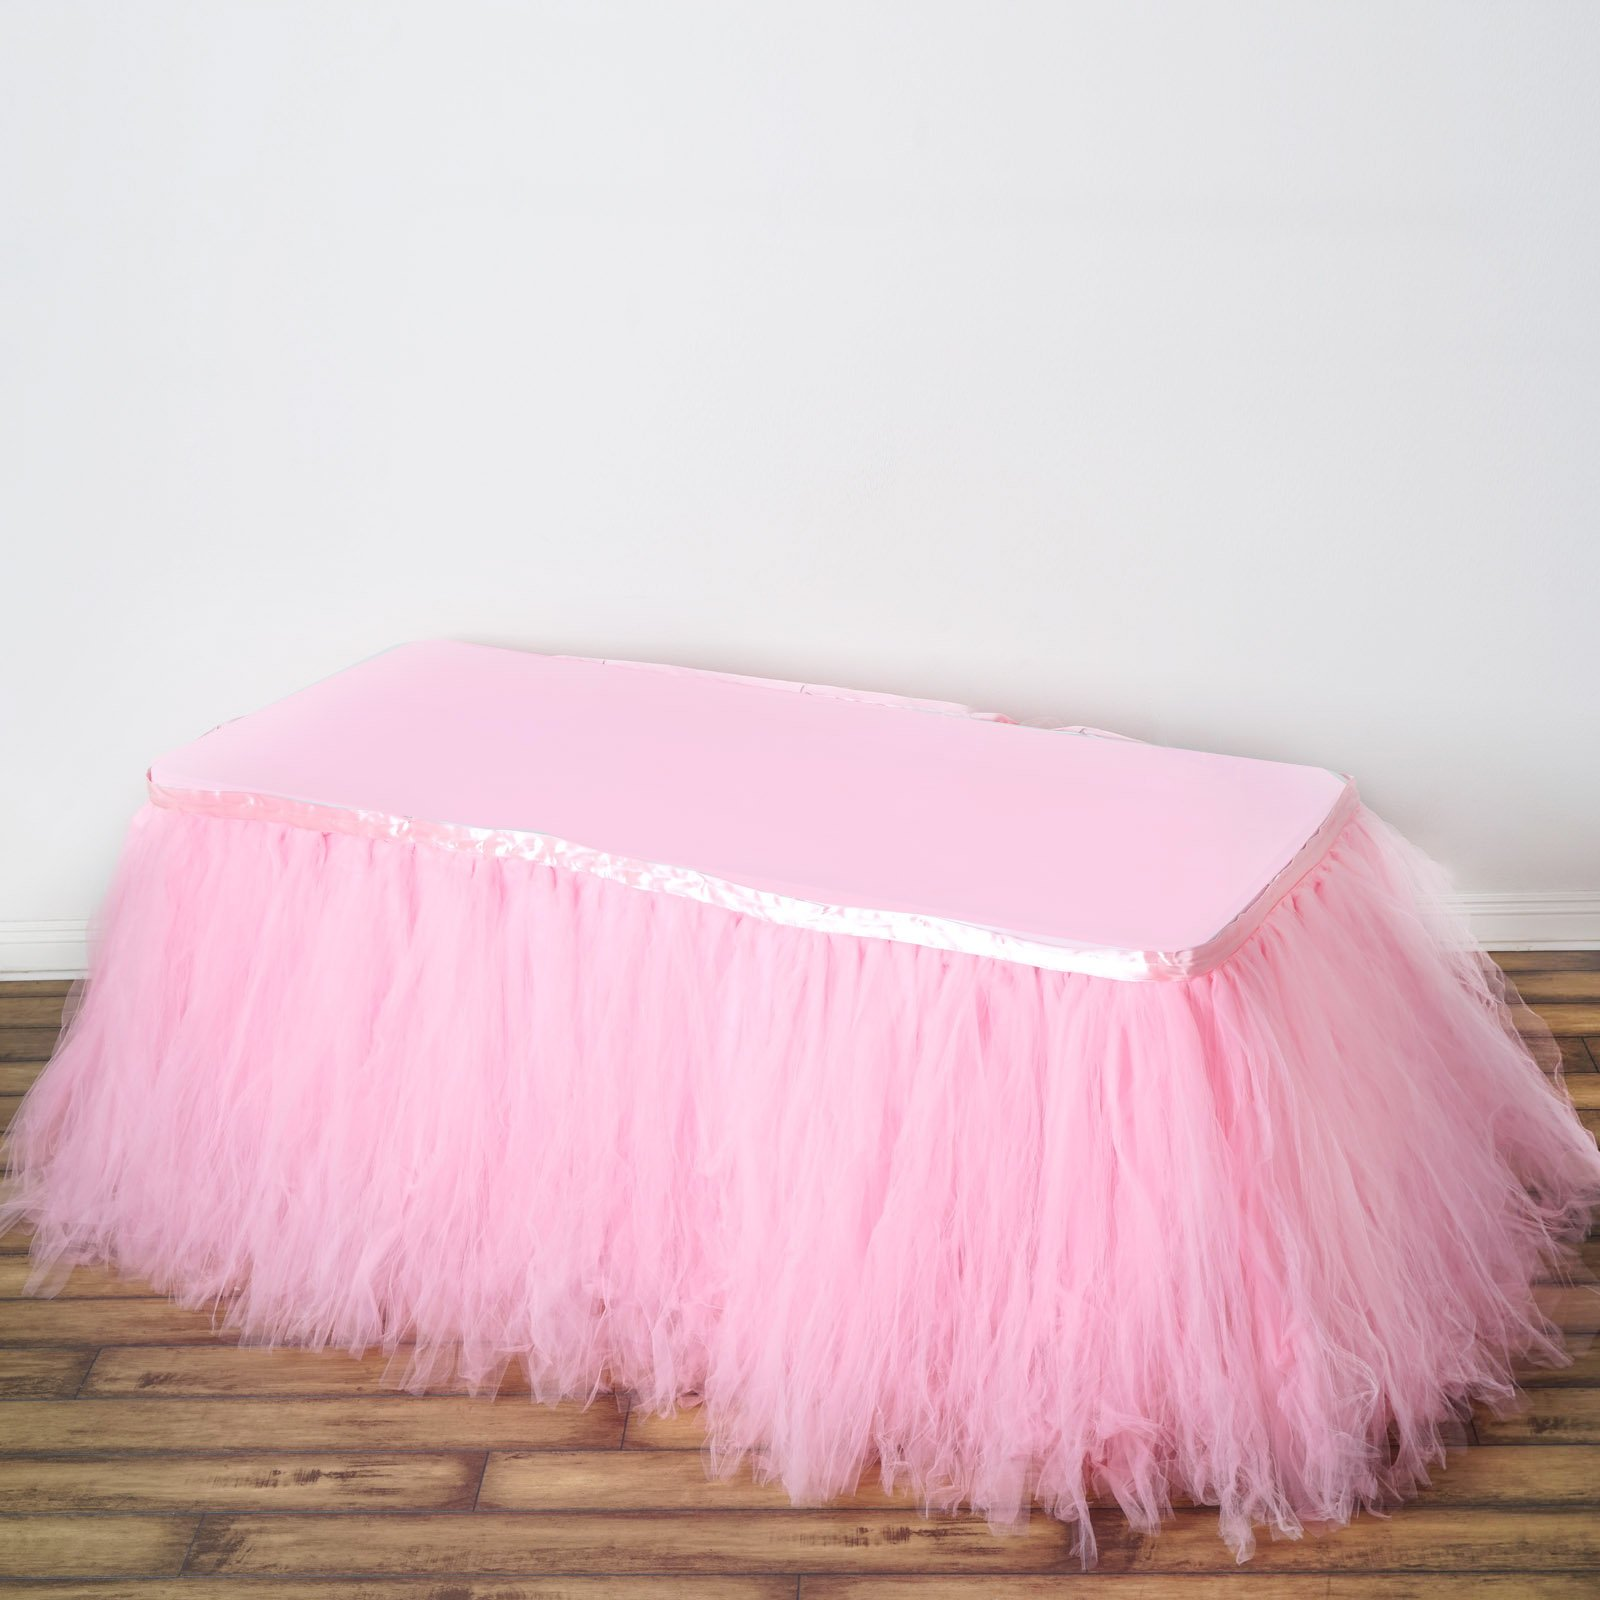 Tableclothsfactory 21ft FULL SIZE 8 Layer Fluffy Tulle - Tutu Table Skirt - Rose Quartz Pink by Tableclothsfactory (Image #1)